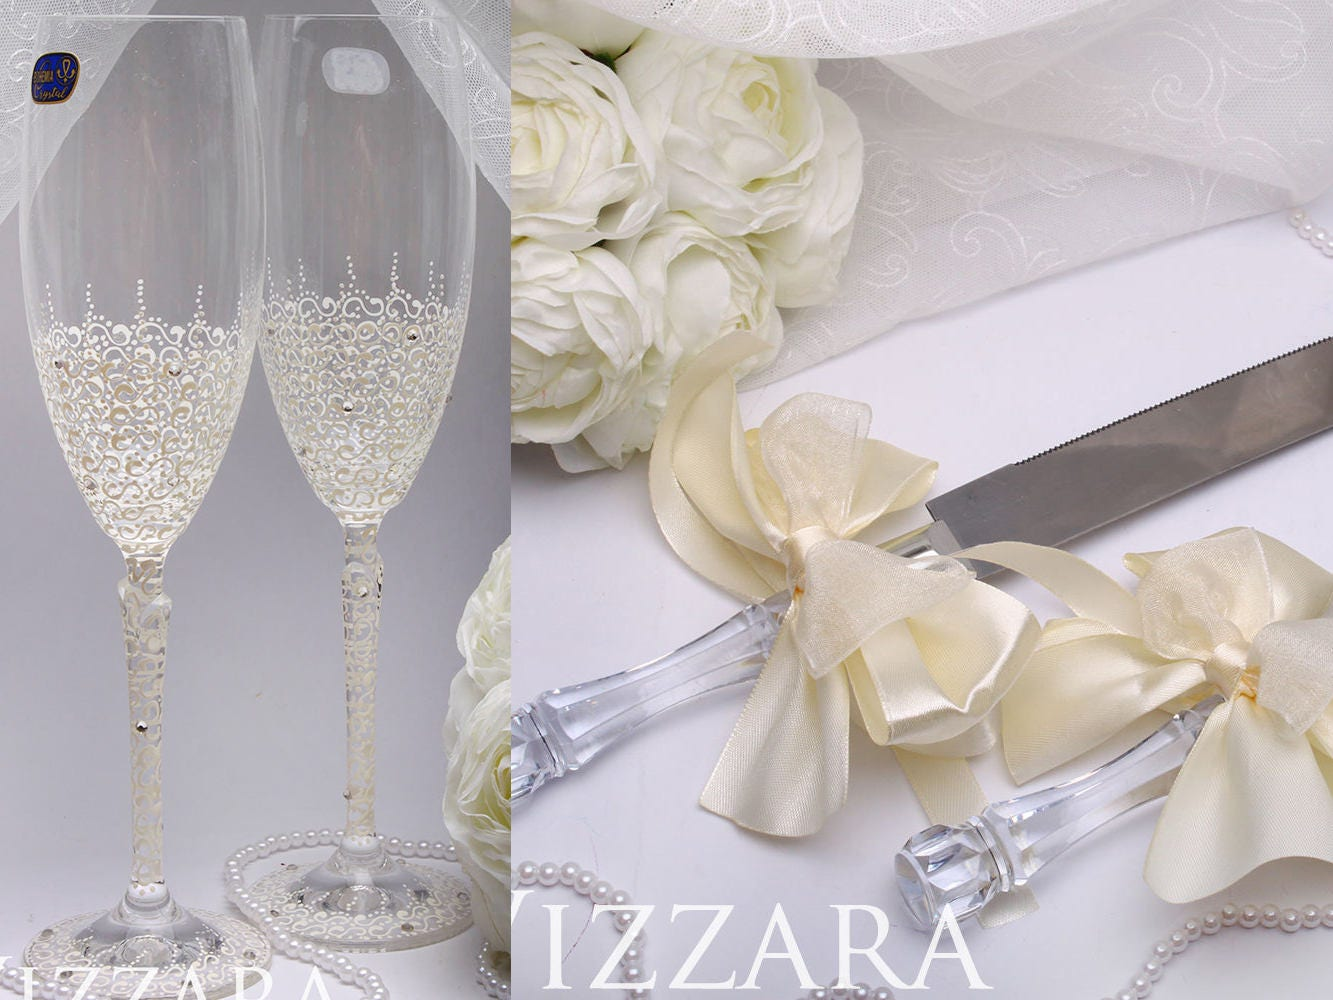 Wedding cake server set Flutes glasses Wedding flute and cake